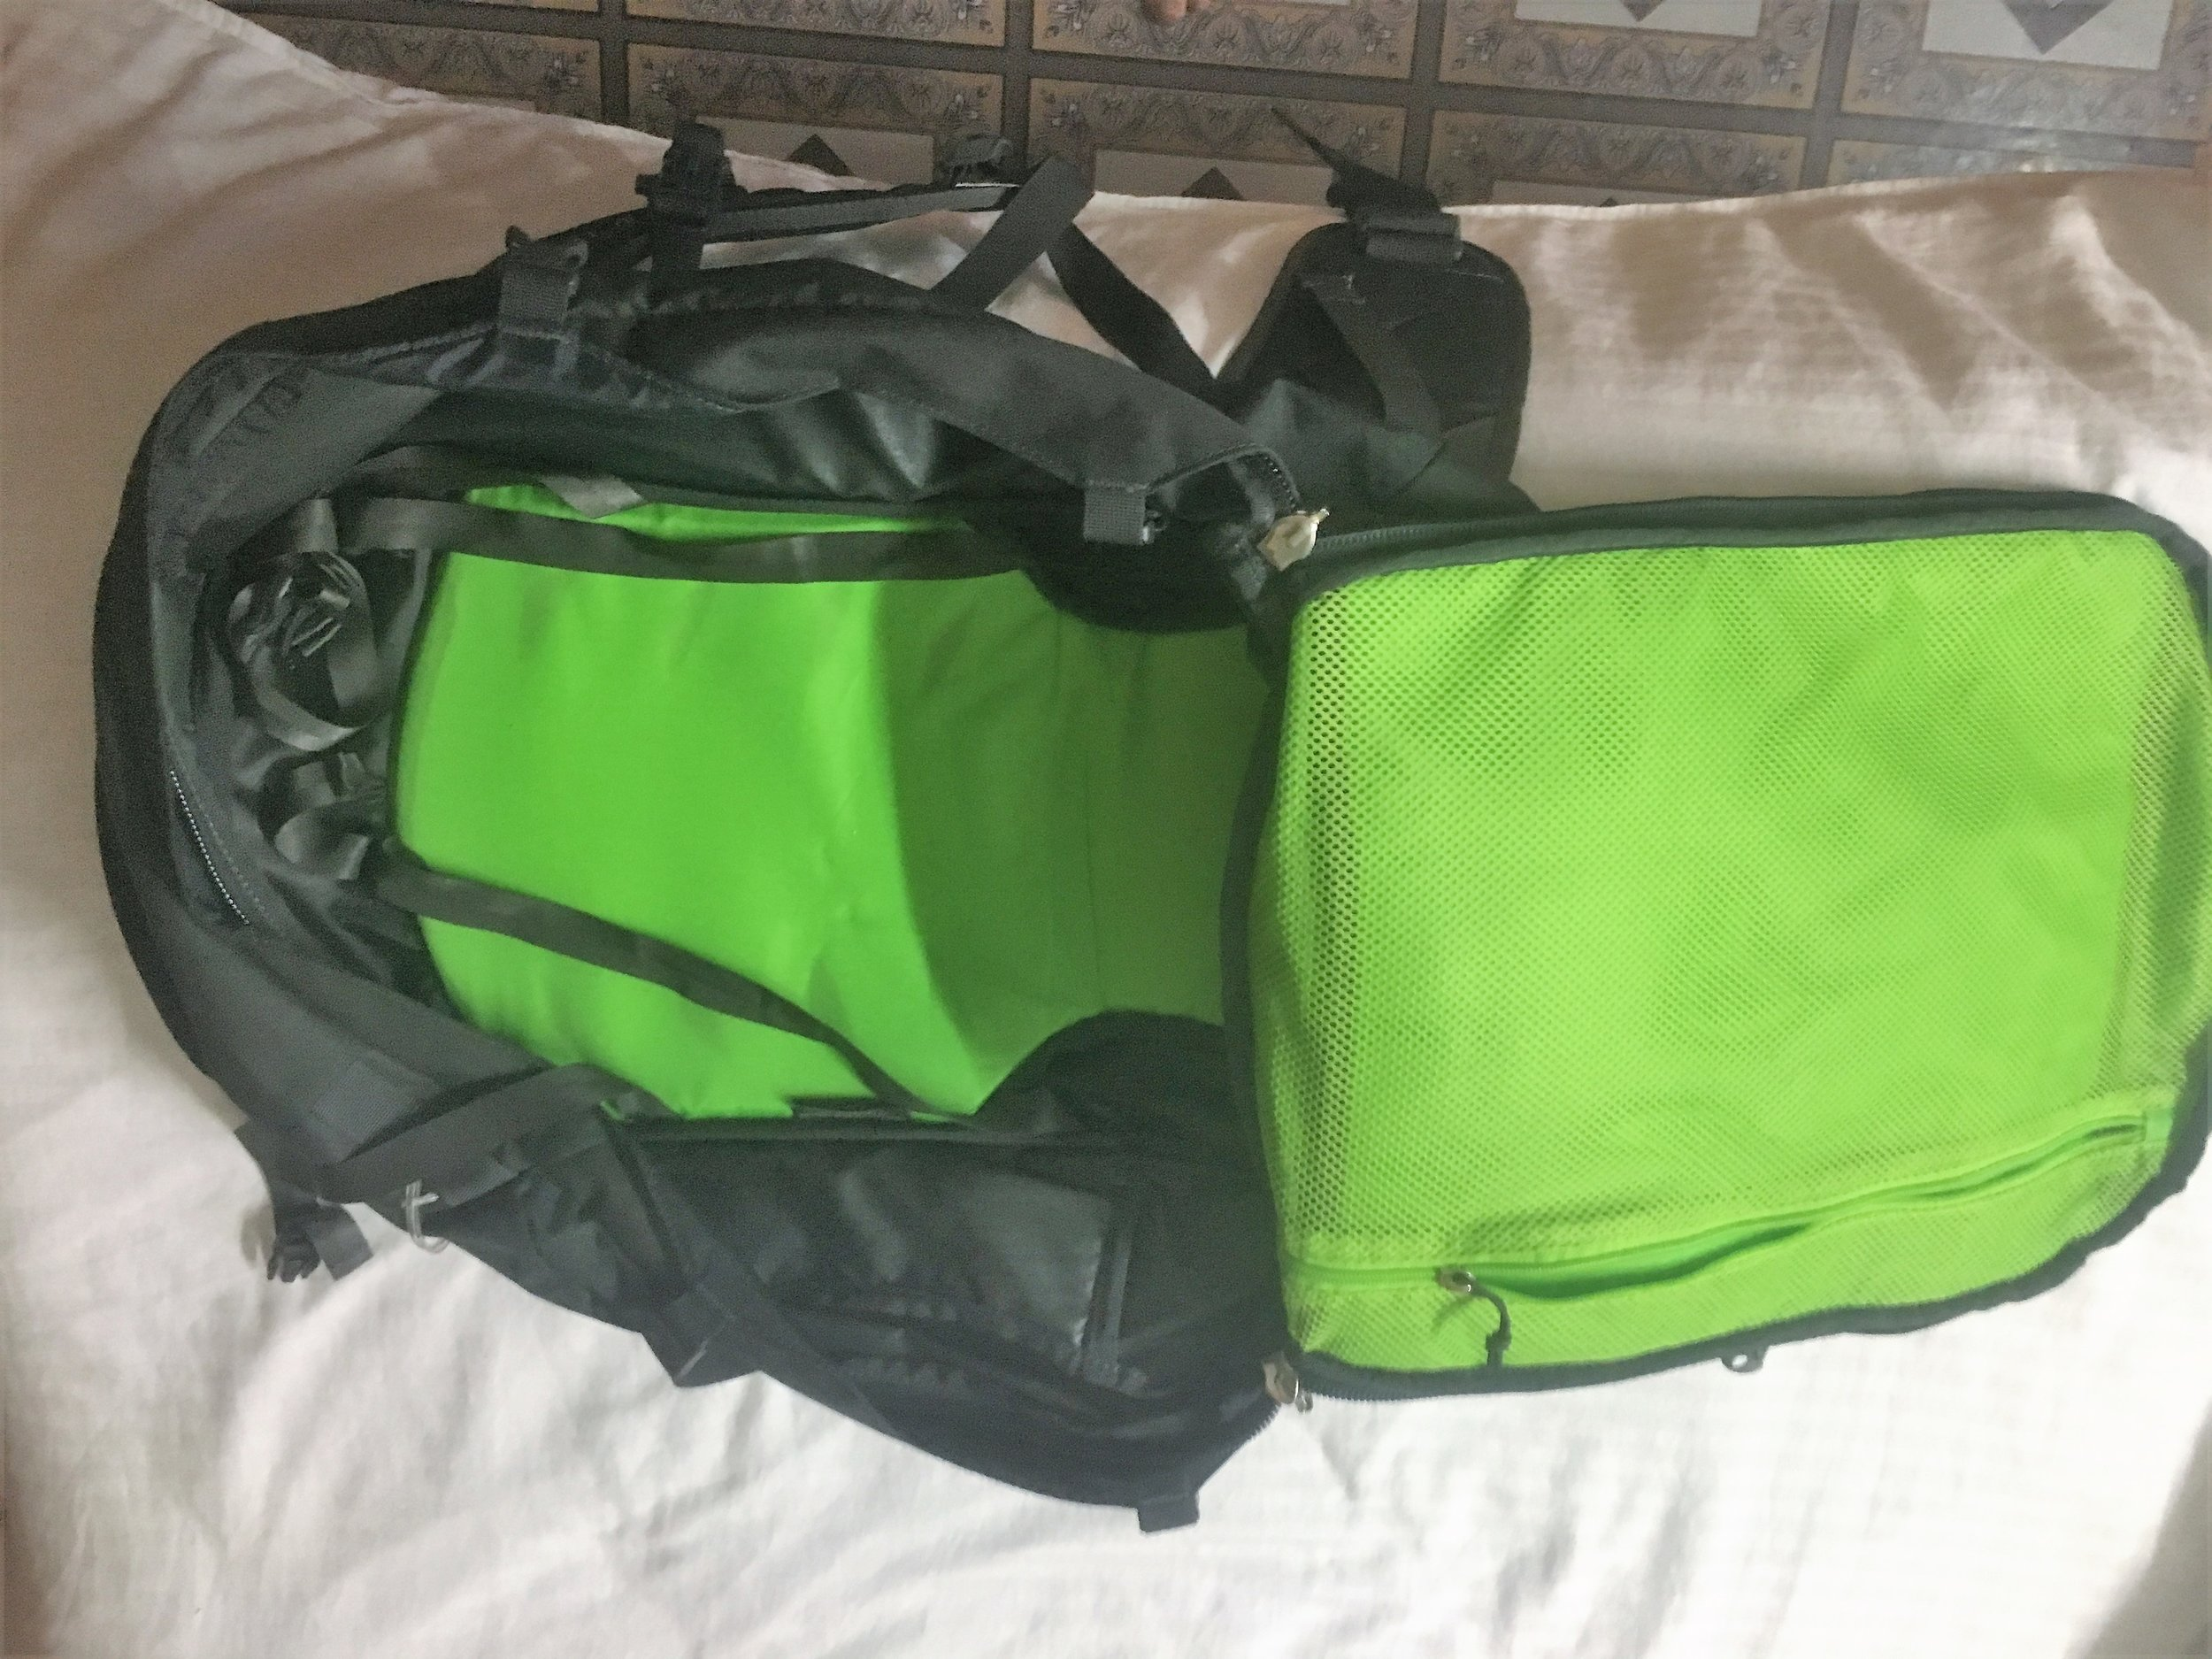 Th bag unzipped showing the main compartment